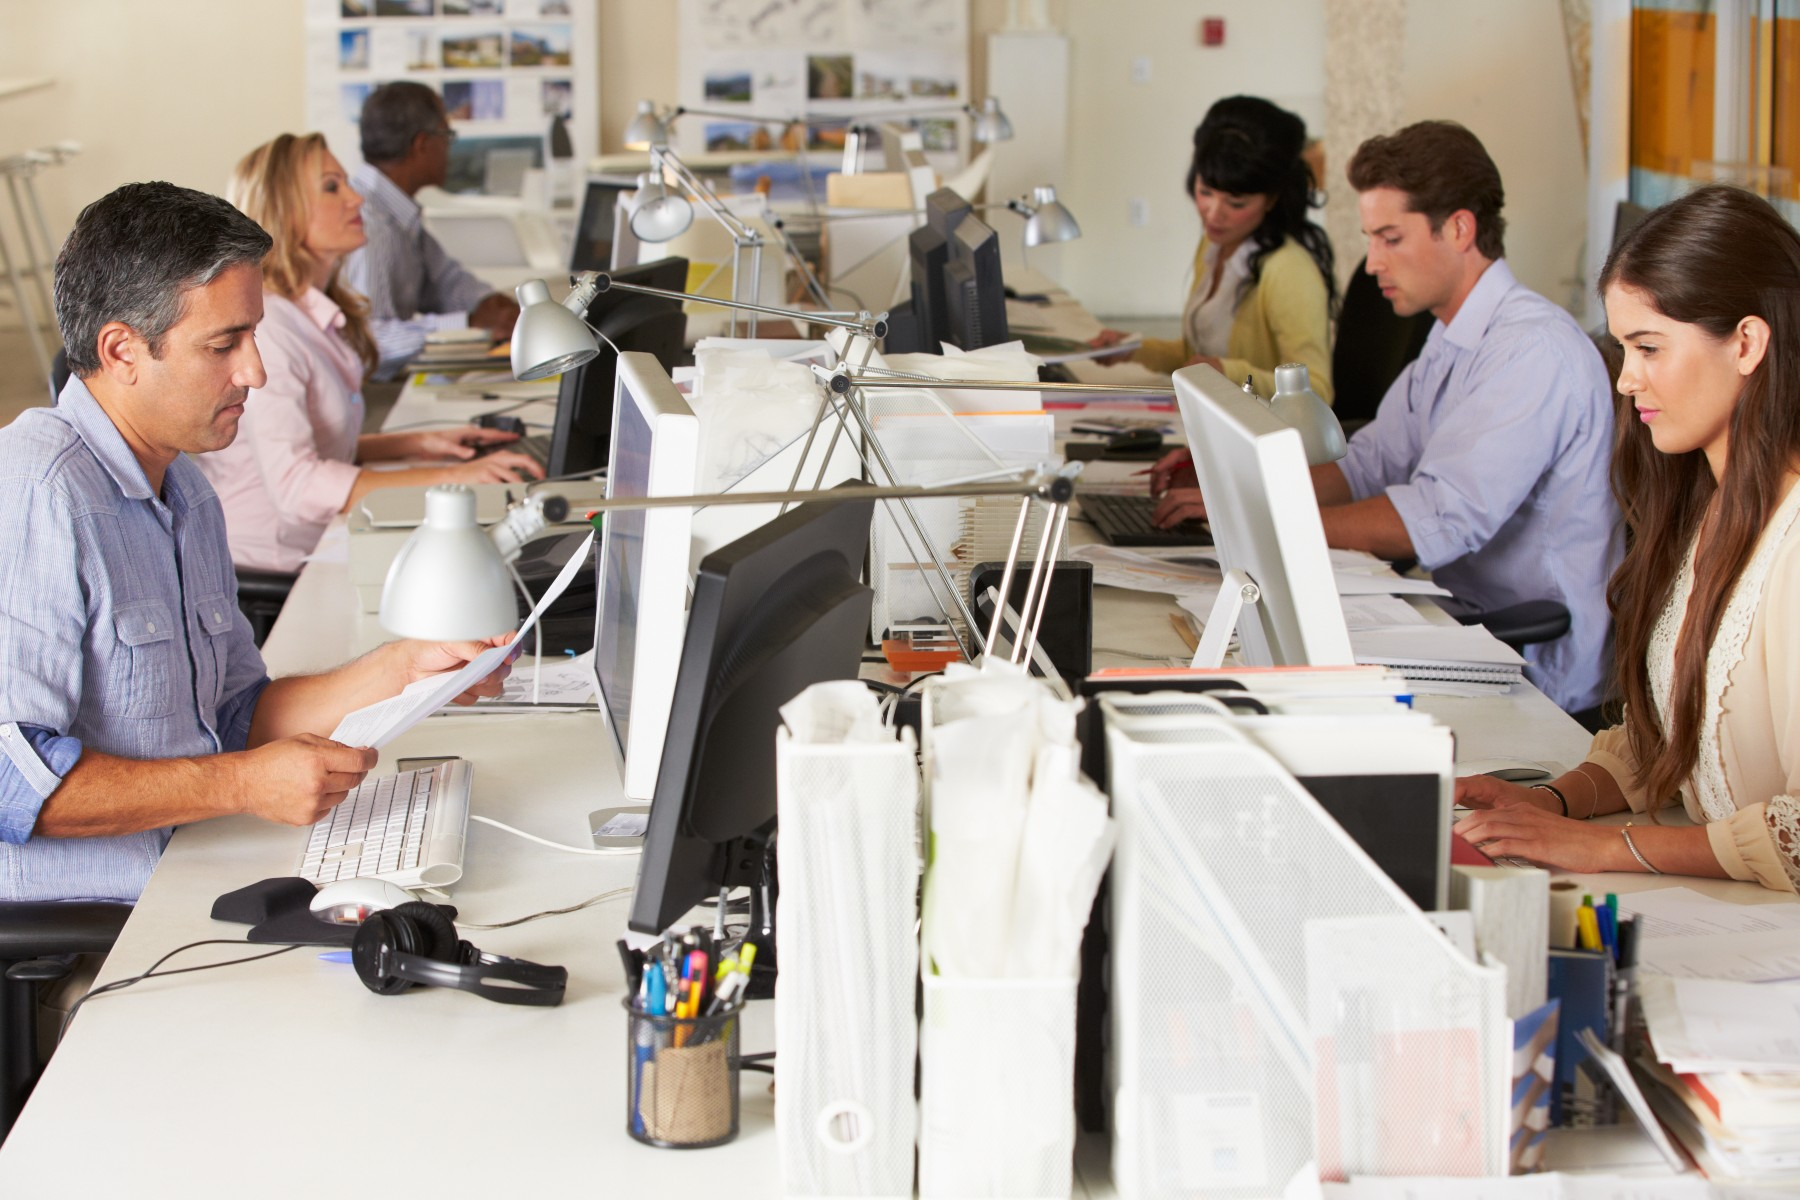 Team of workers in busy Spain office